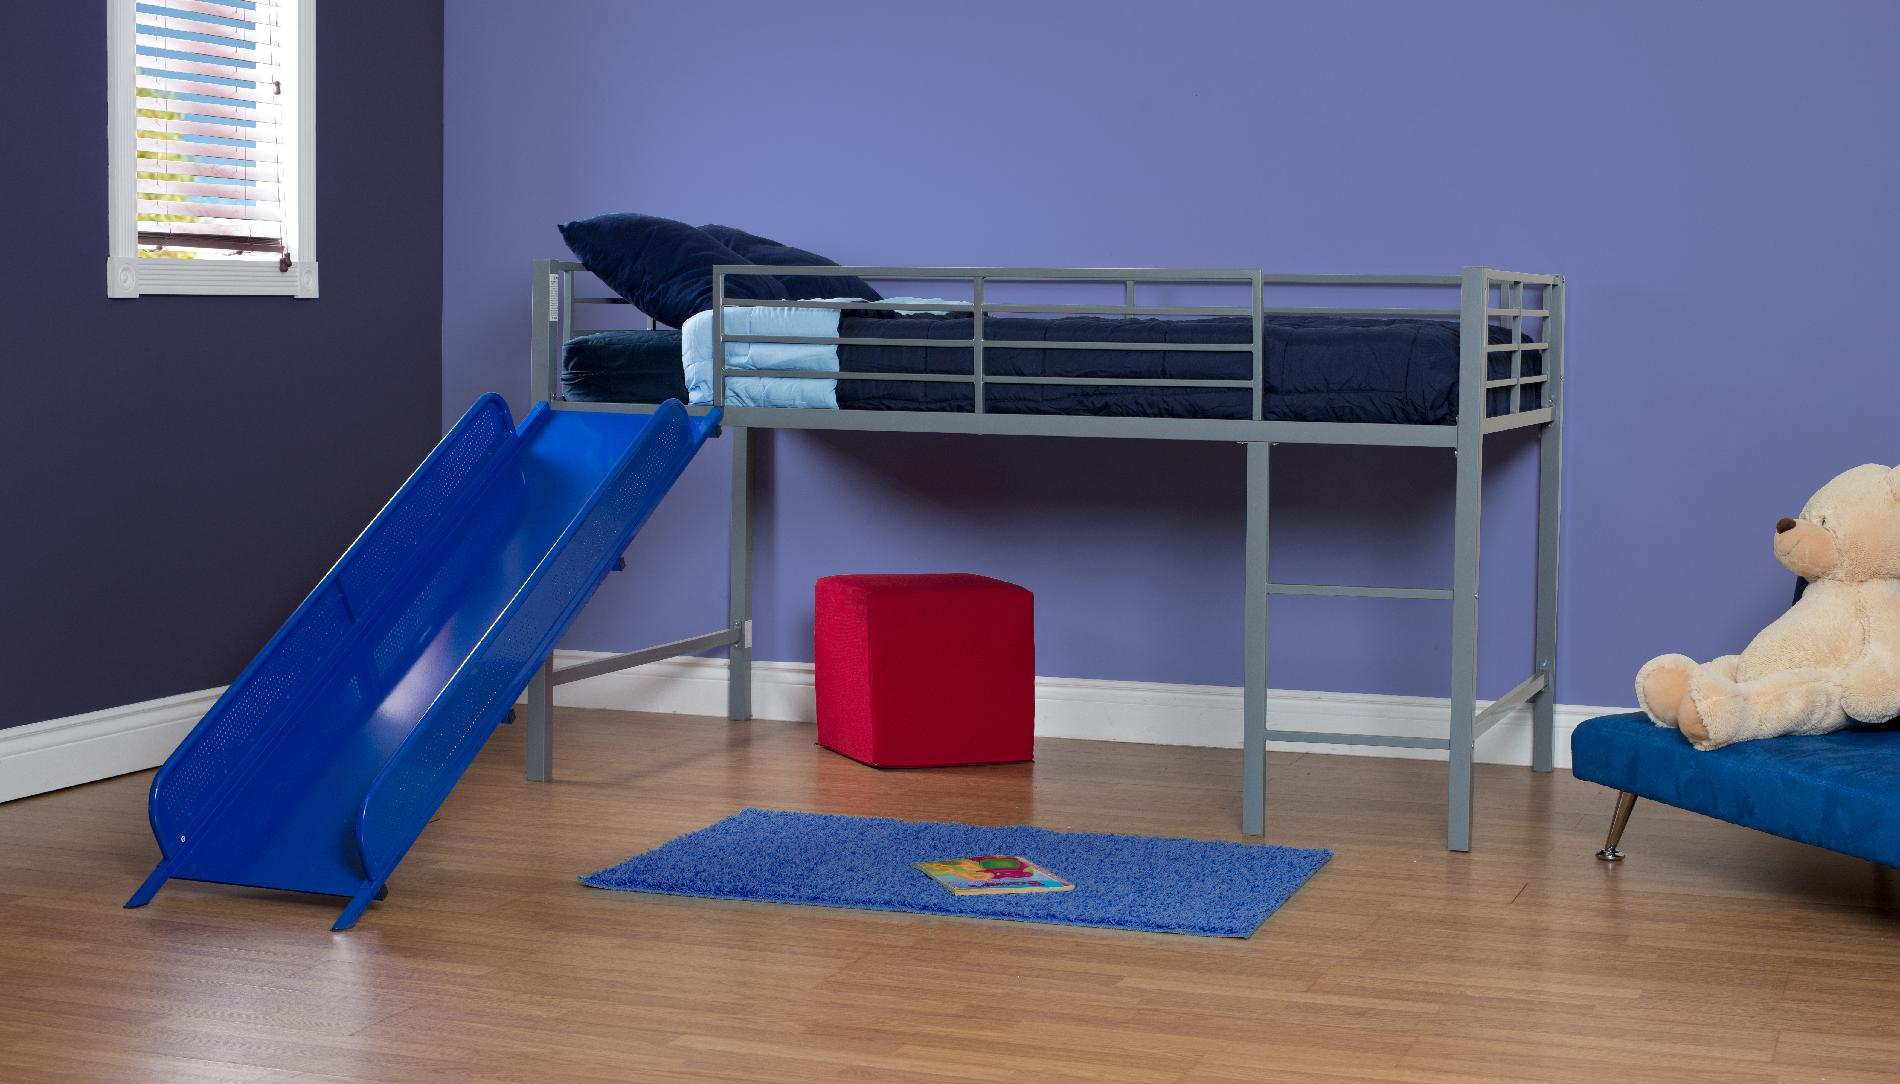 Kids Bed With Slide Dorel Home Furnishings Fantasy Loft Bed W Blue Slide